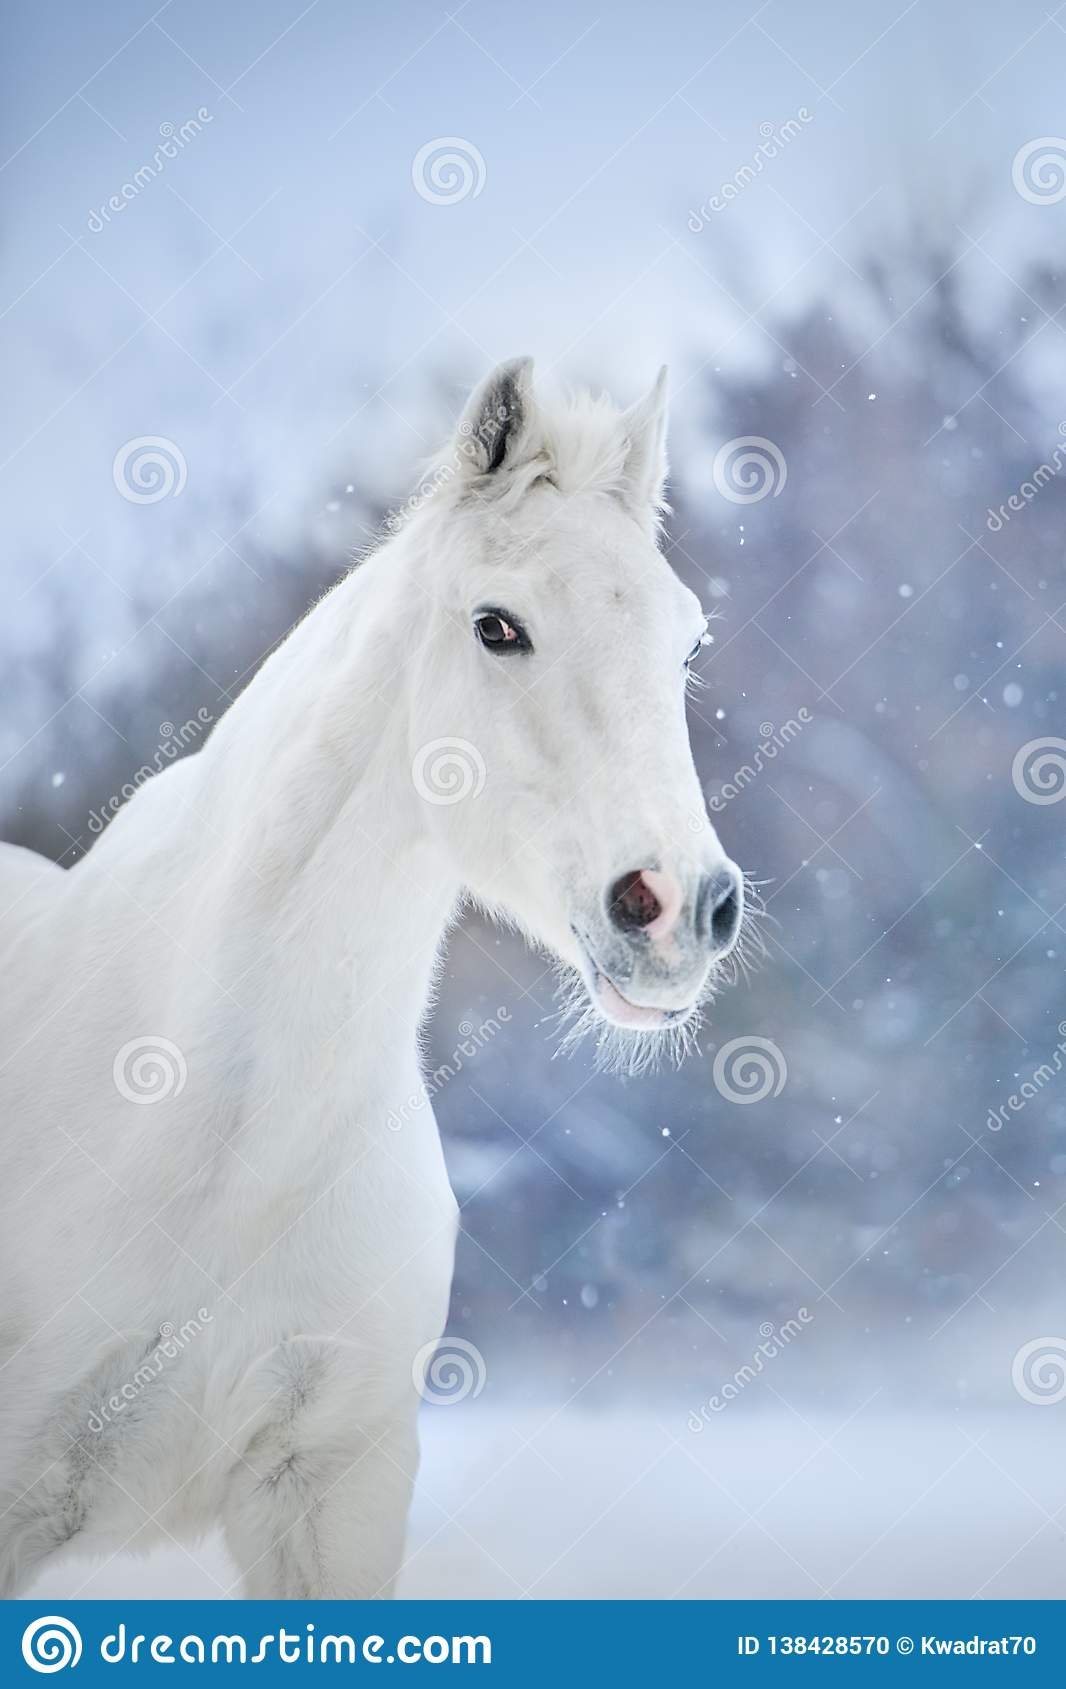 White Horse In Snow Stock Photo Image Of Beautiful 138428570